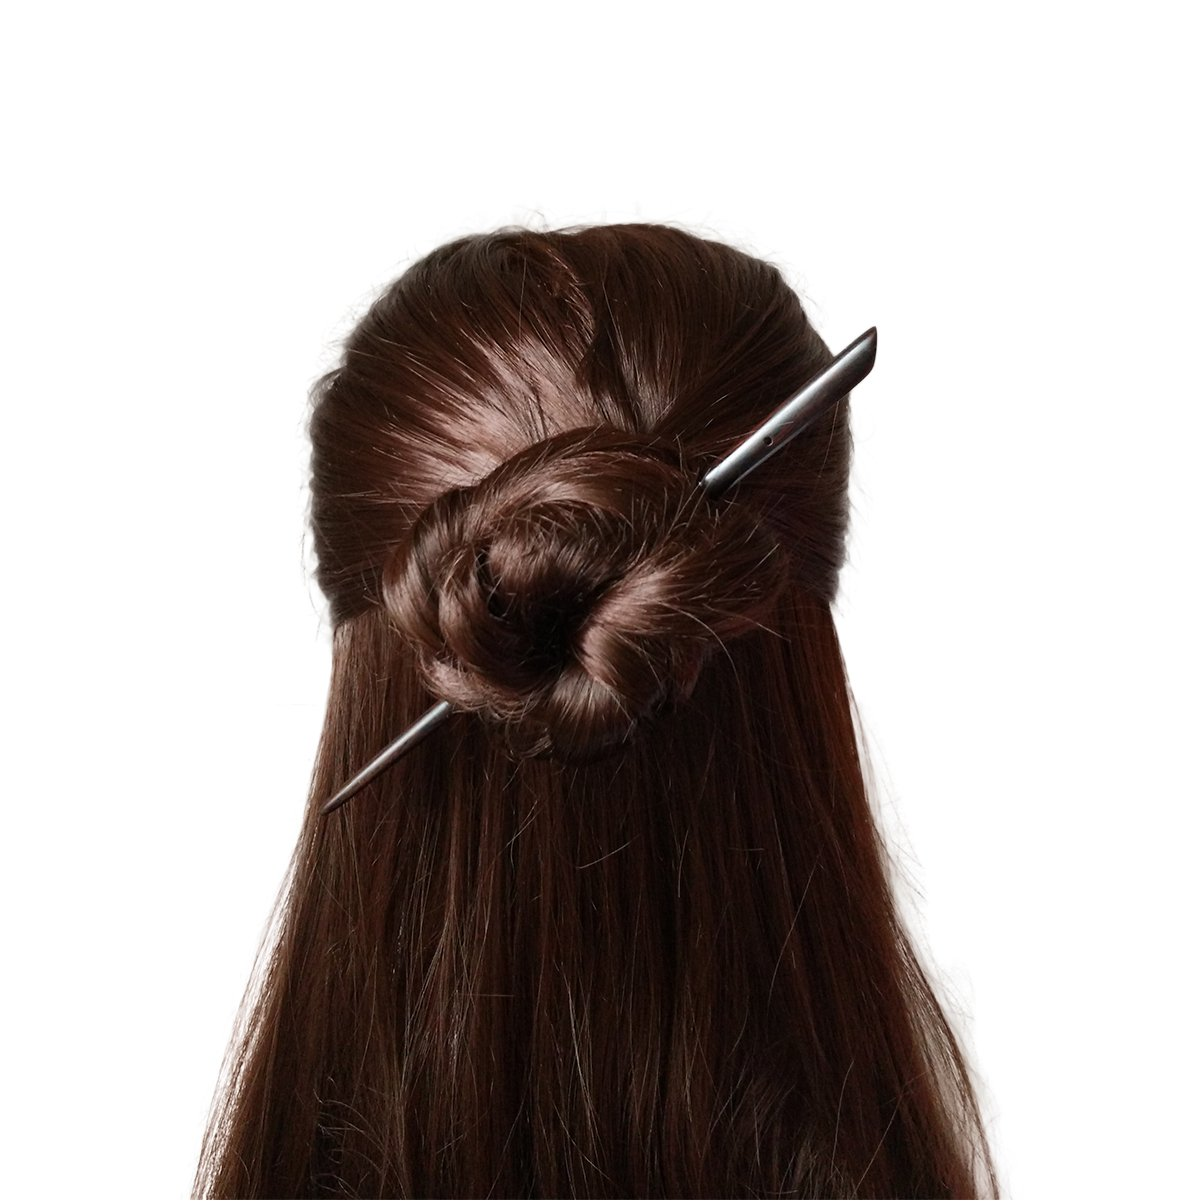 FANTAC CRAFTS Vintage Women Girl Handmade Ebony Simple Hair Stick Accessories Hairpin Chignon Bun Updo Pins Chopstick Style Elegant Beauty (Black)